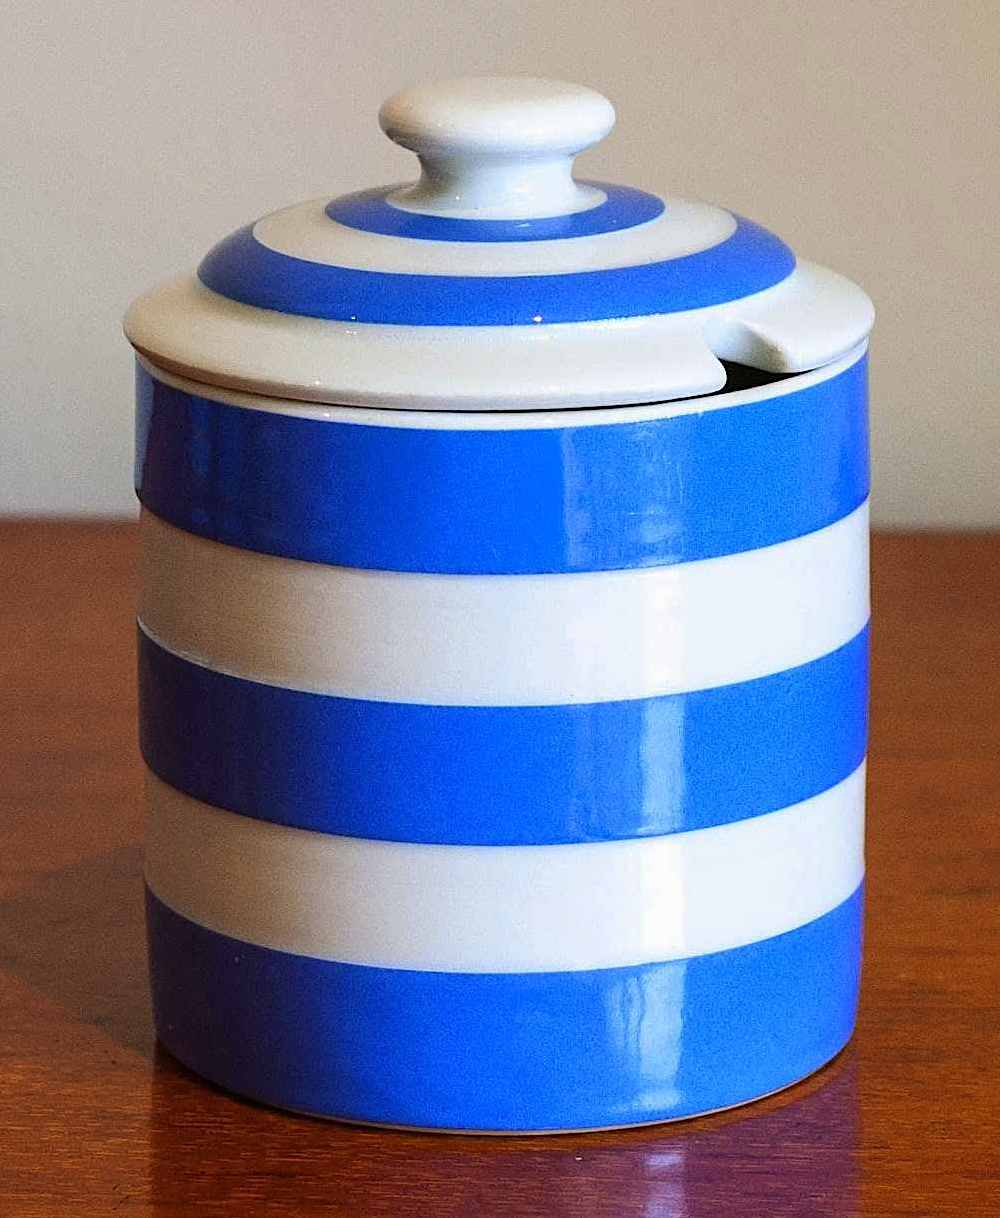 a Cornishware jam jar 1940? blue and white stripes in a color photograph